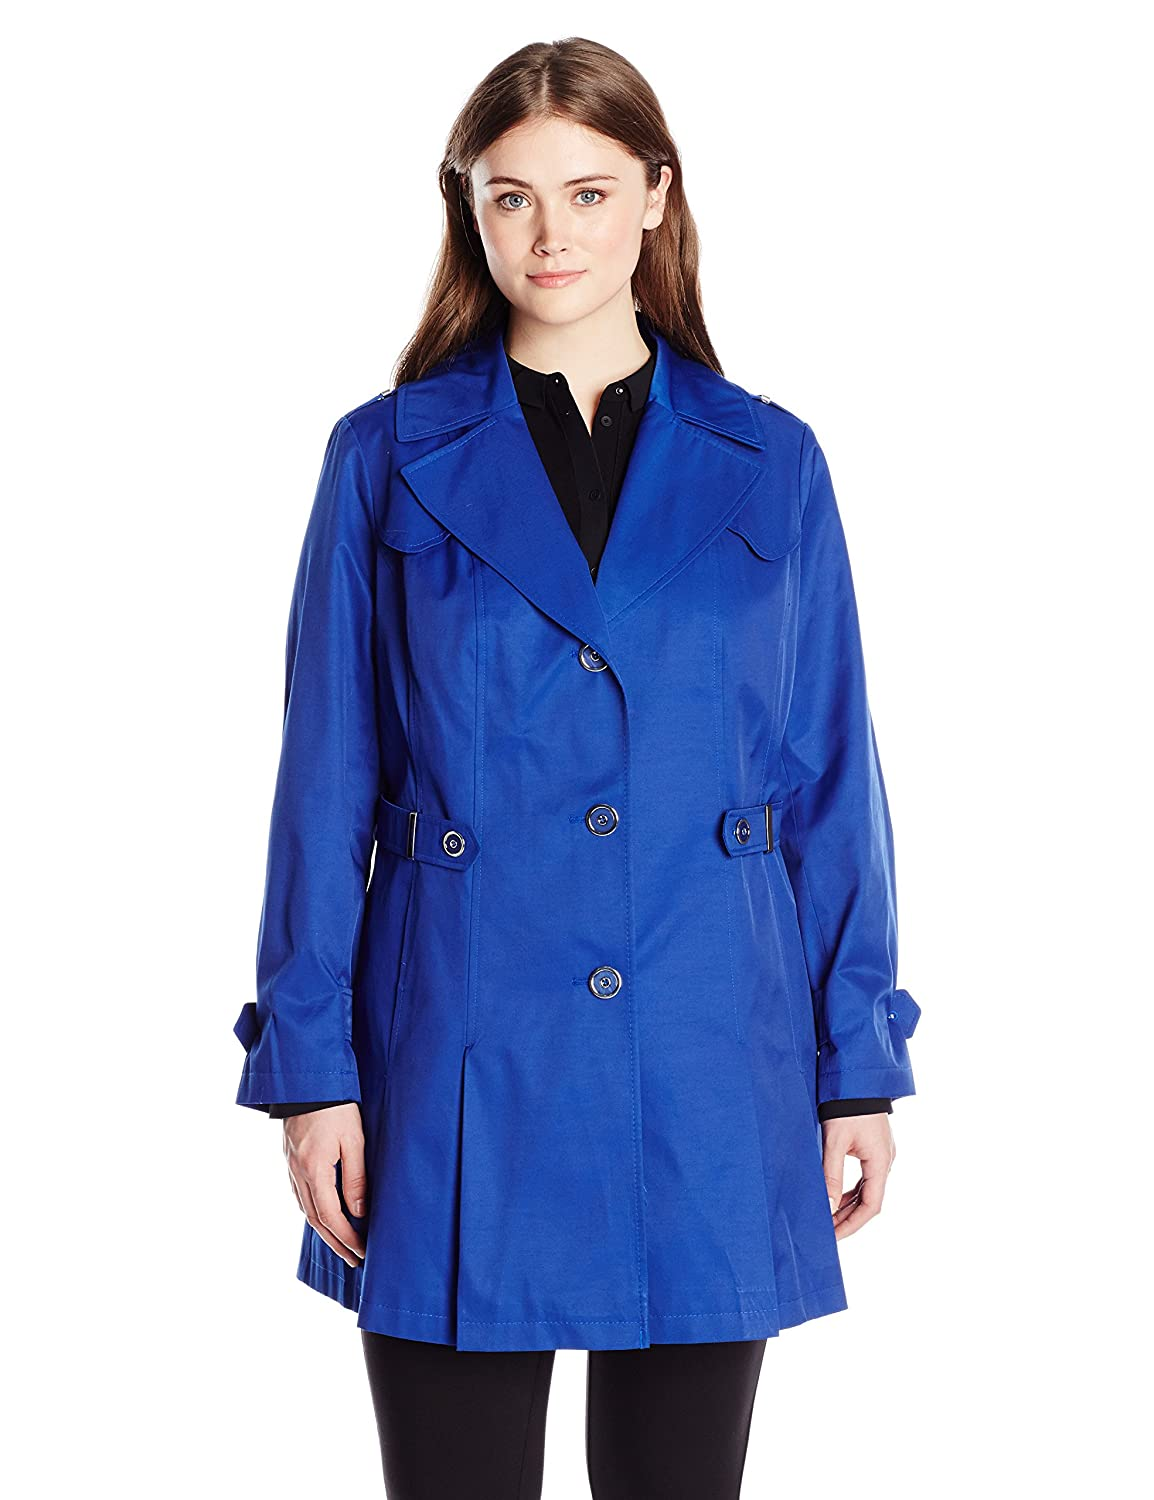 Via Spiga Women's Plus-Size Single Breasted Pleated Trench Coat 06147W-VB